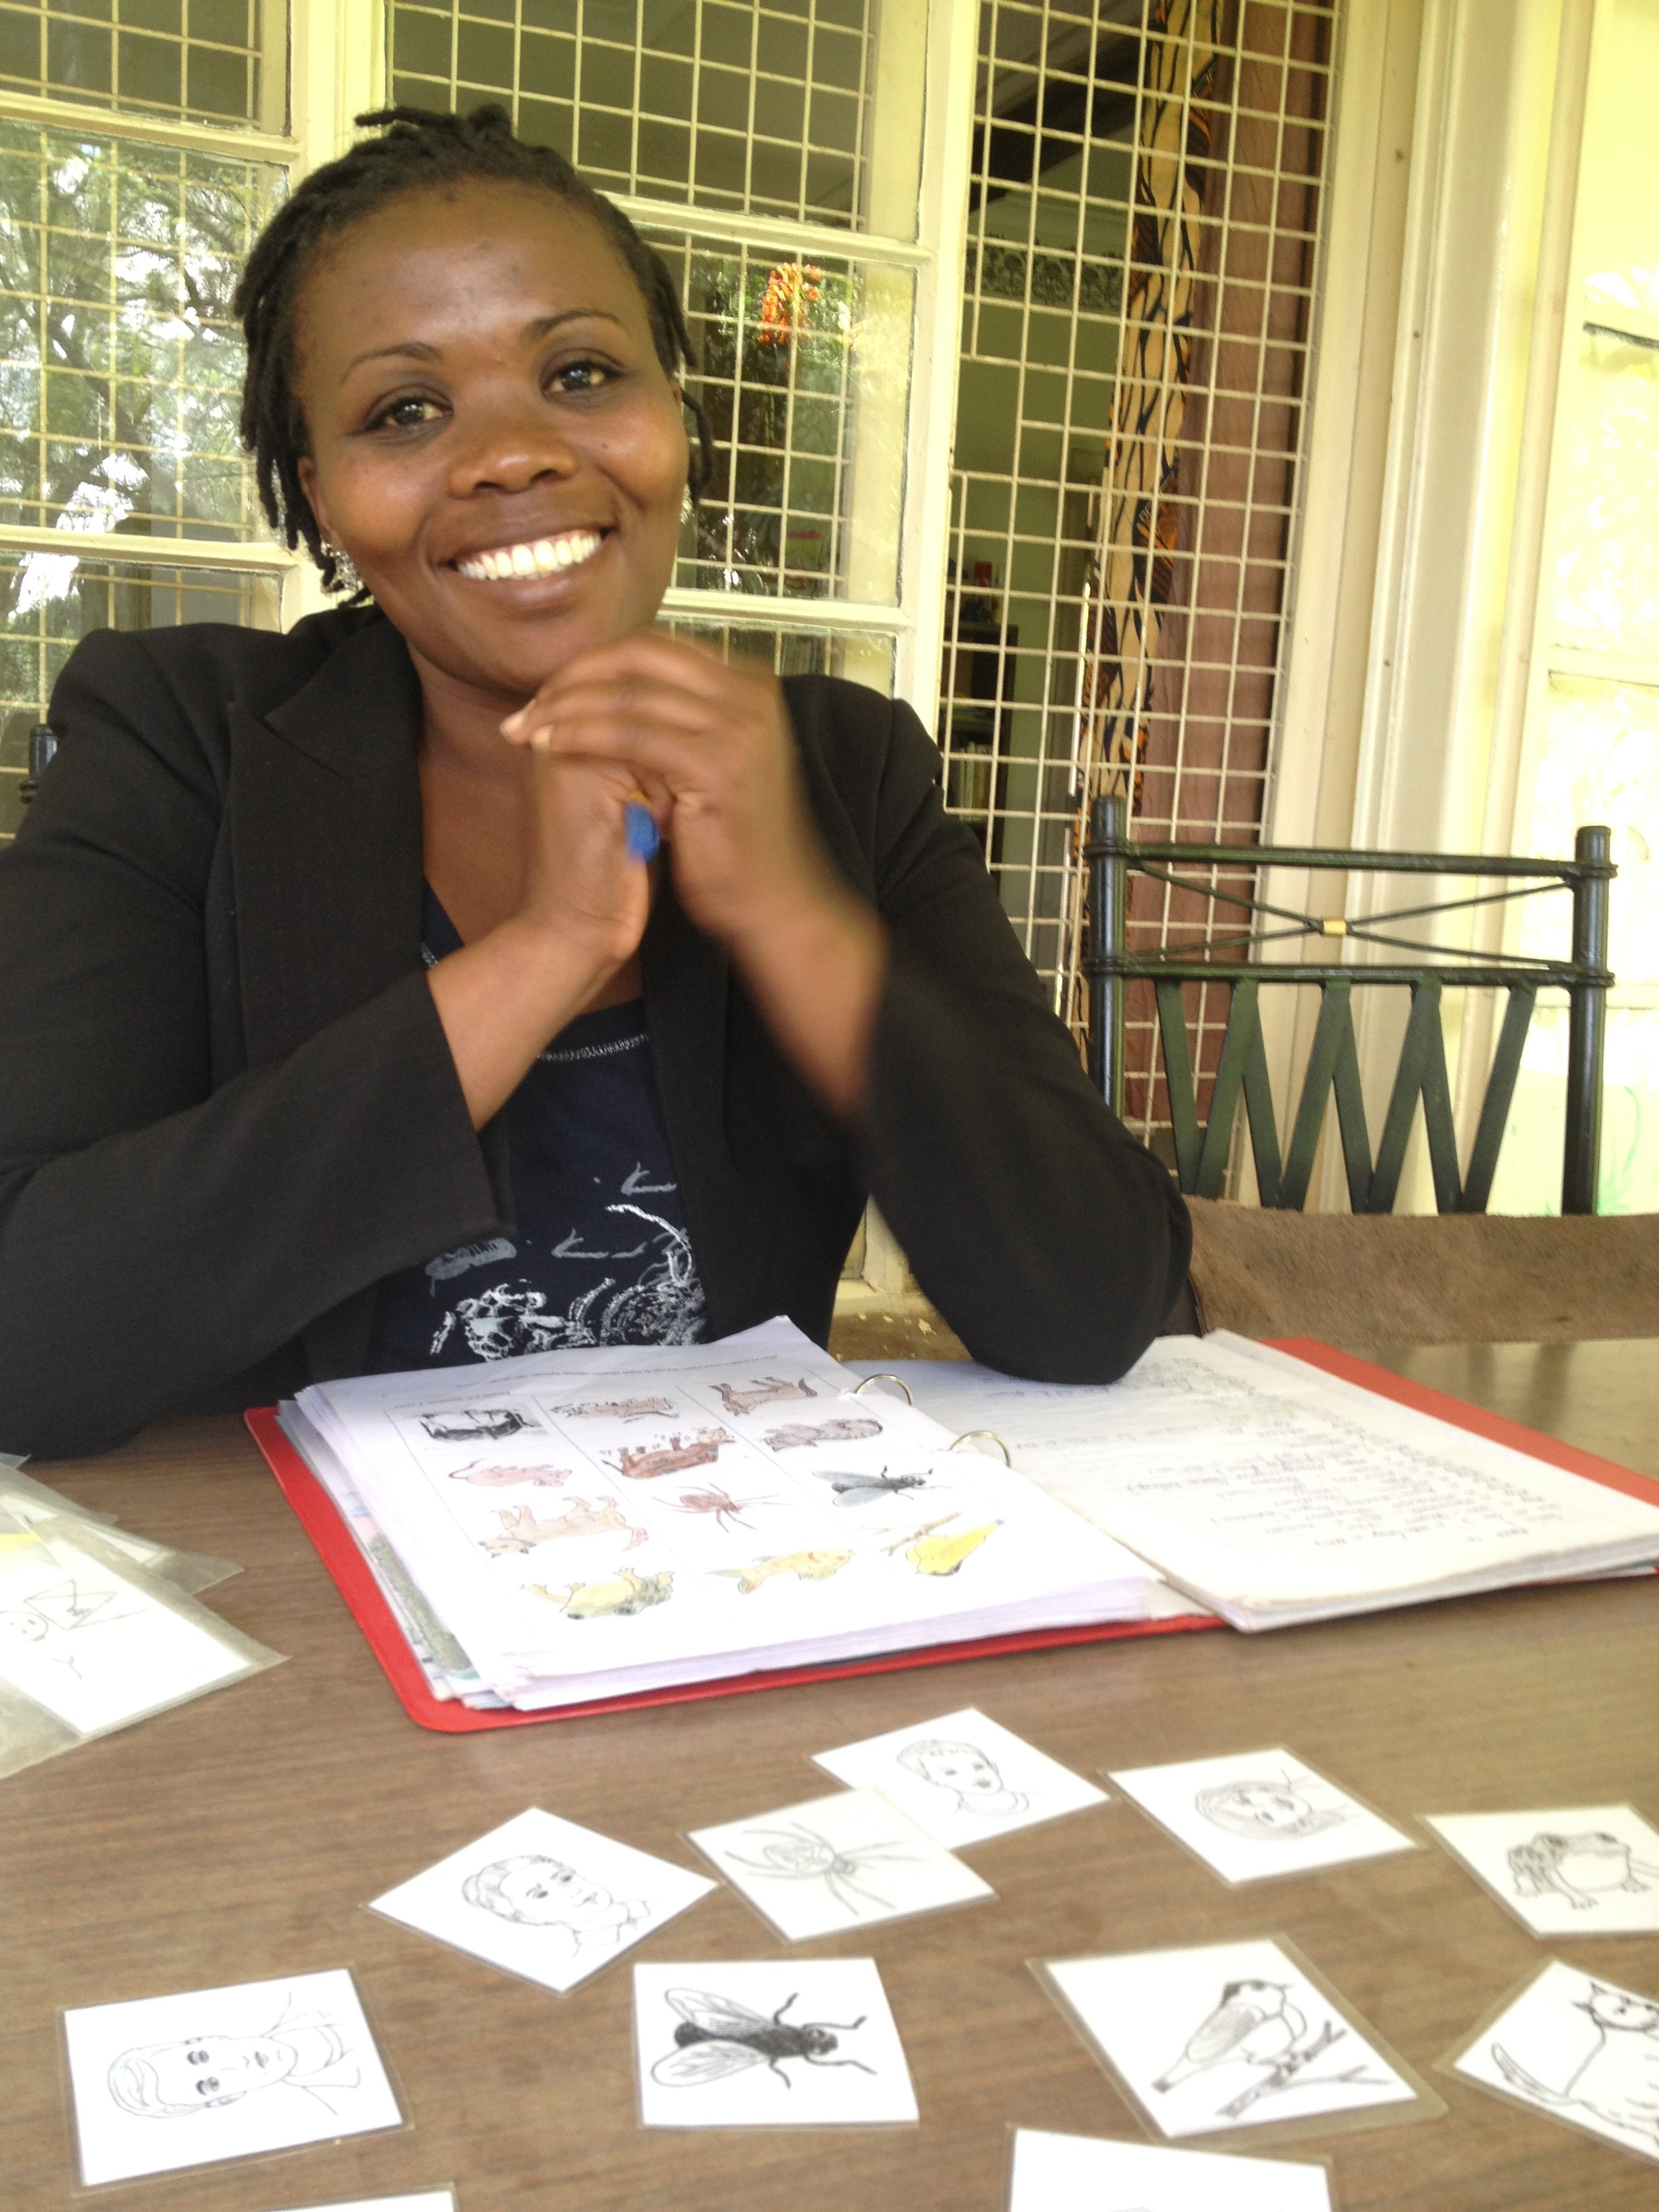 Our wonderful language tutor, Beatrice, smiles after she places some of our Swahili word flash cards on the table.